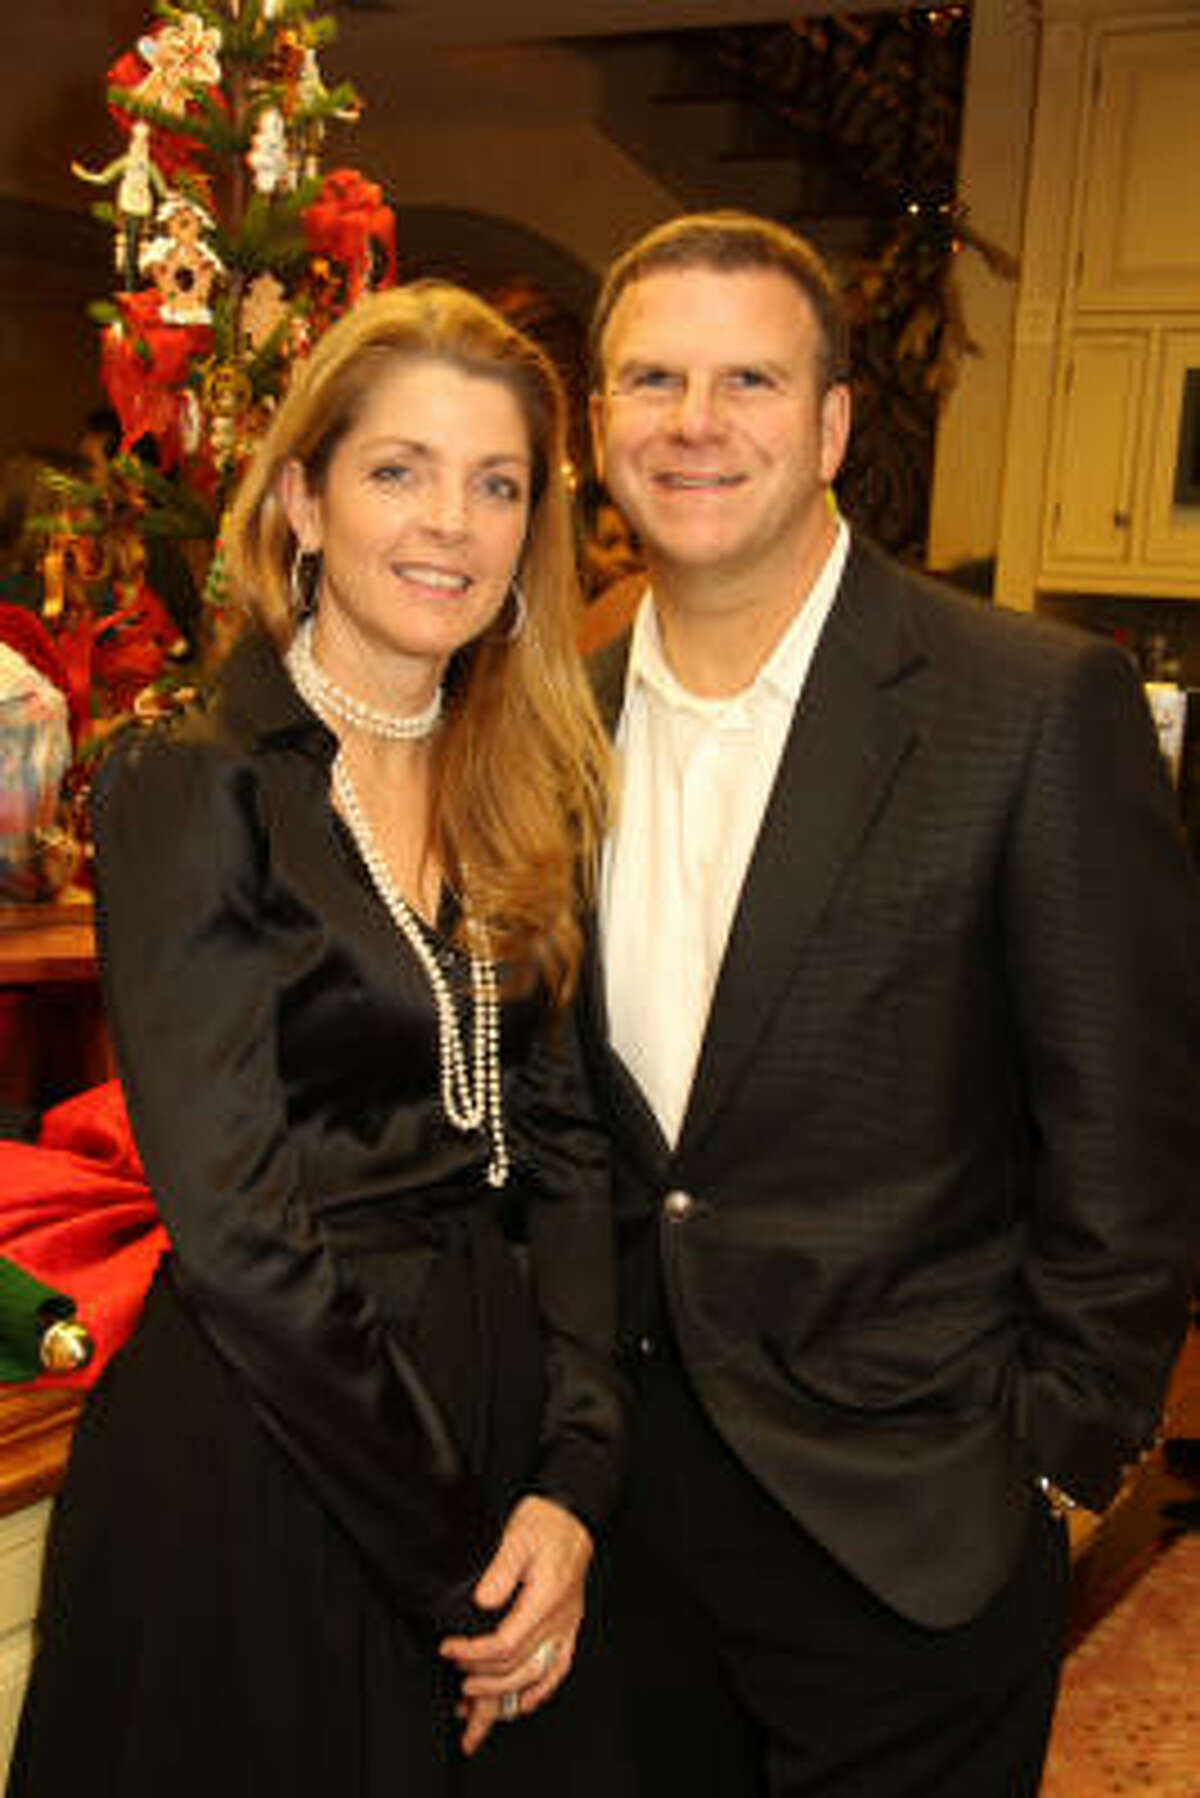 Paige and Tilman Fertitta hosted the 2009 Santa's Elves Party benefiting a pediatrics nutrition research program at the Children's Cancer Hospital at M.D. Anderson Cancer Center.